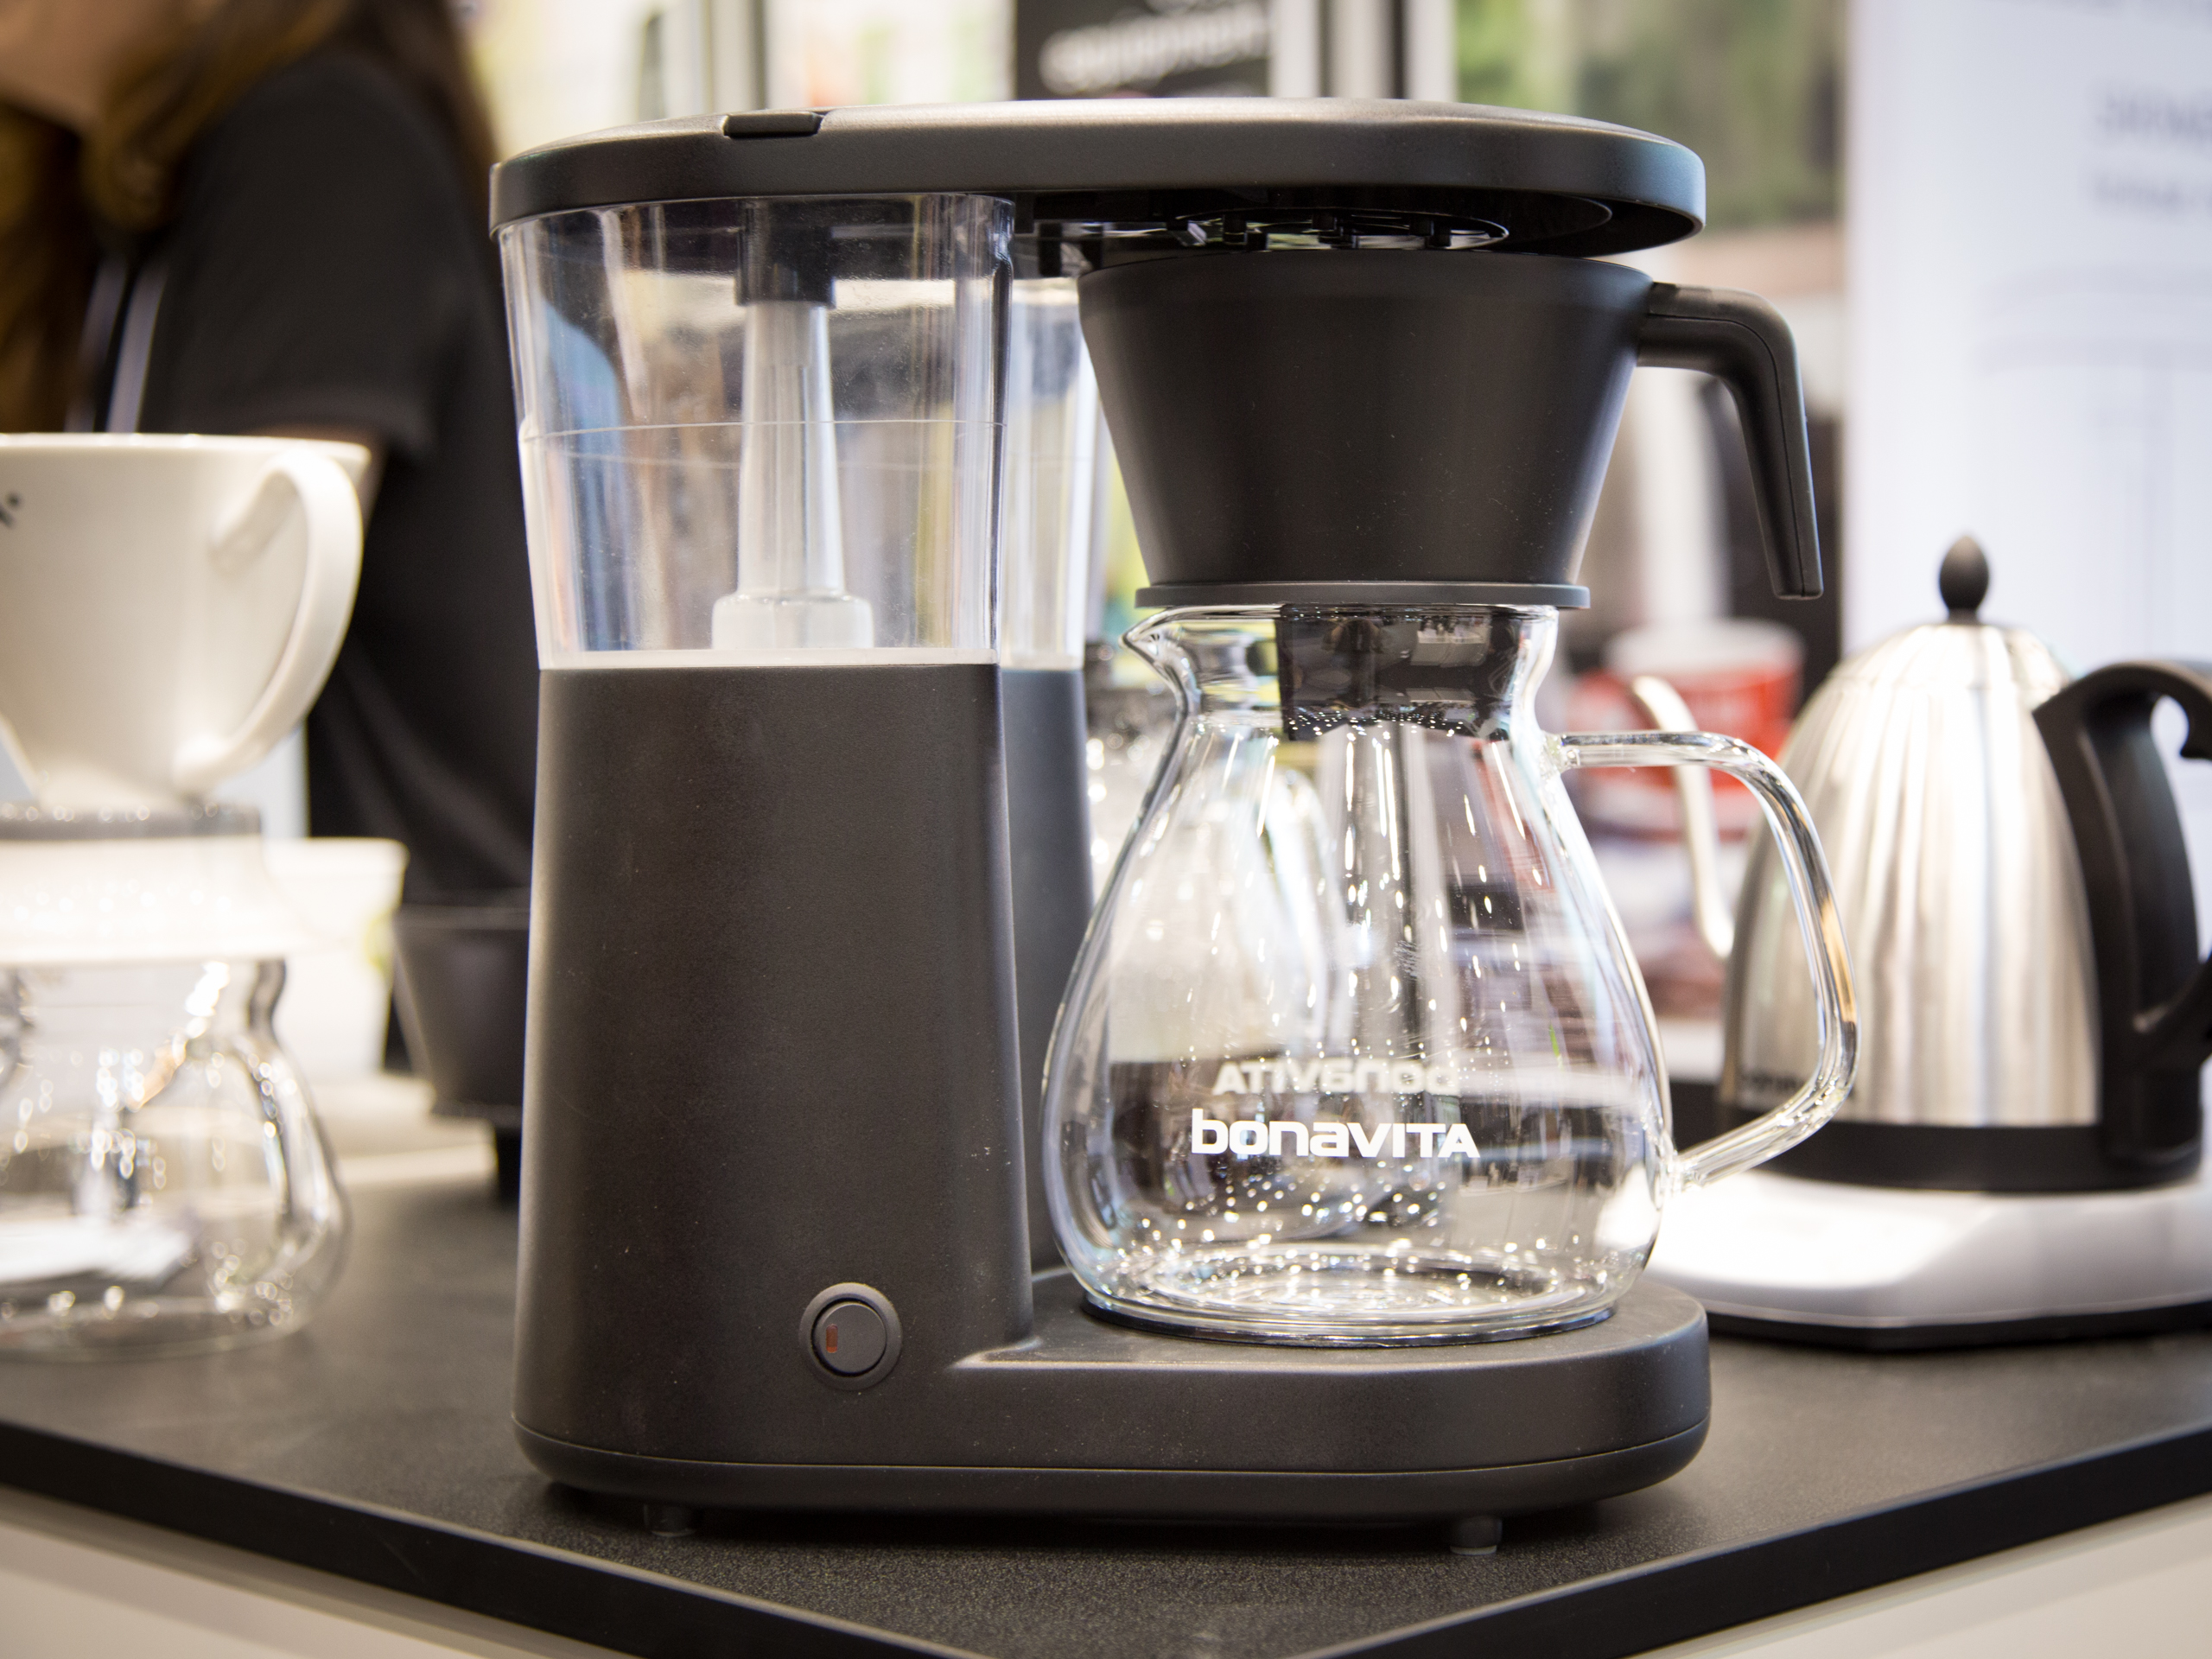 Bonavita Entry Level 8-Cup Glass Carafe Brewer